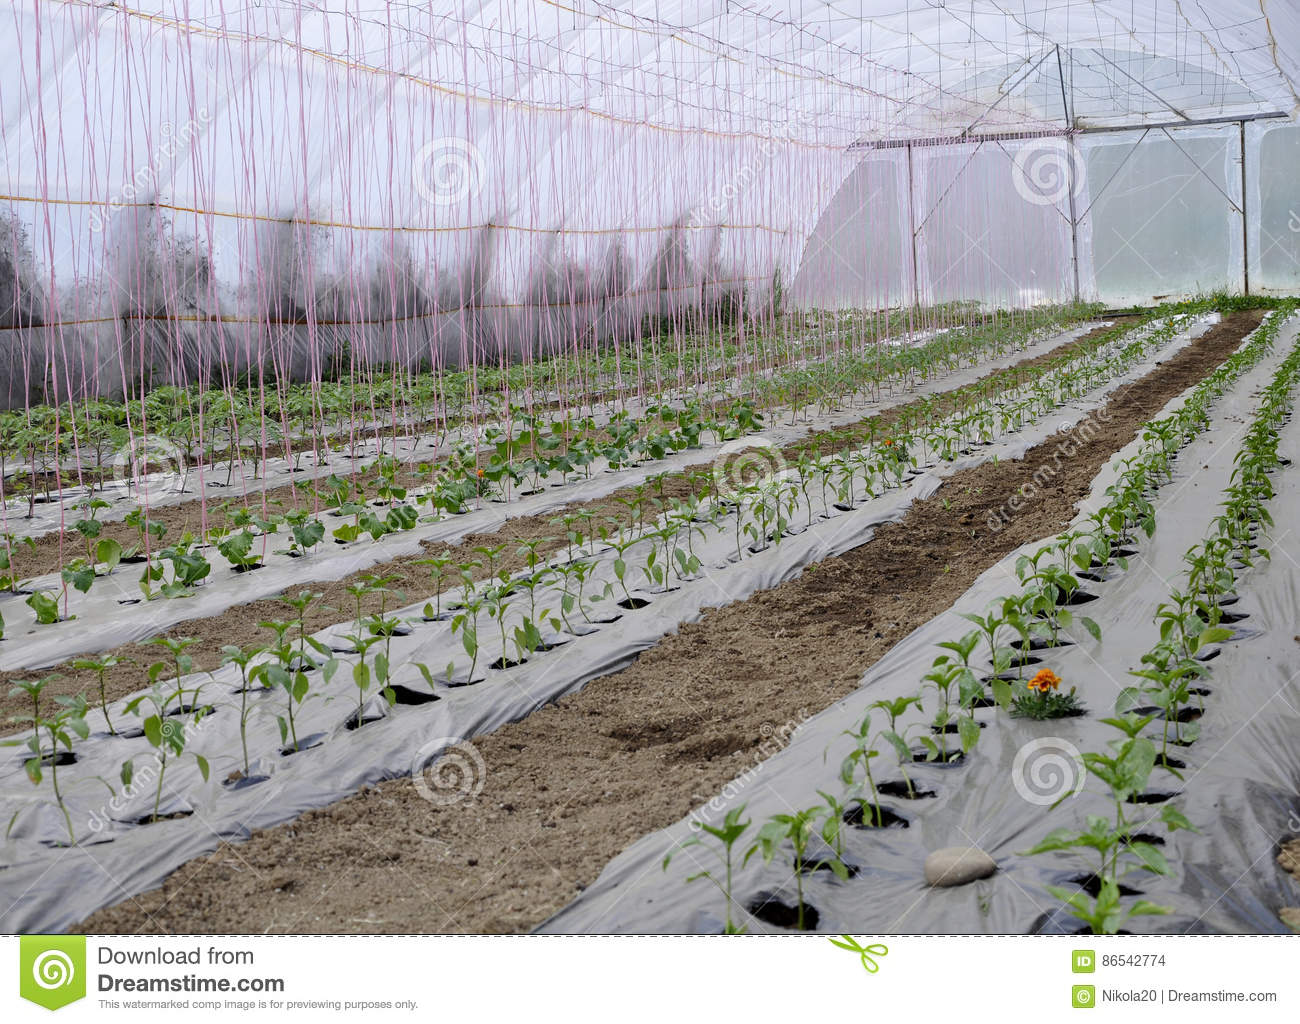 Greenhouse with plastic film which raised early tomatoes peppers and other vegetables seedlings